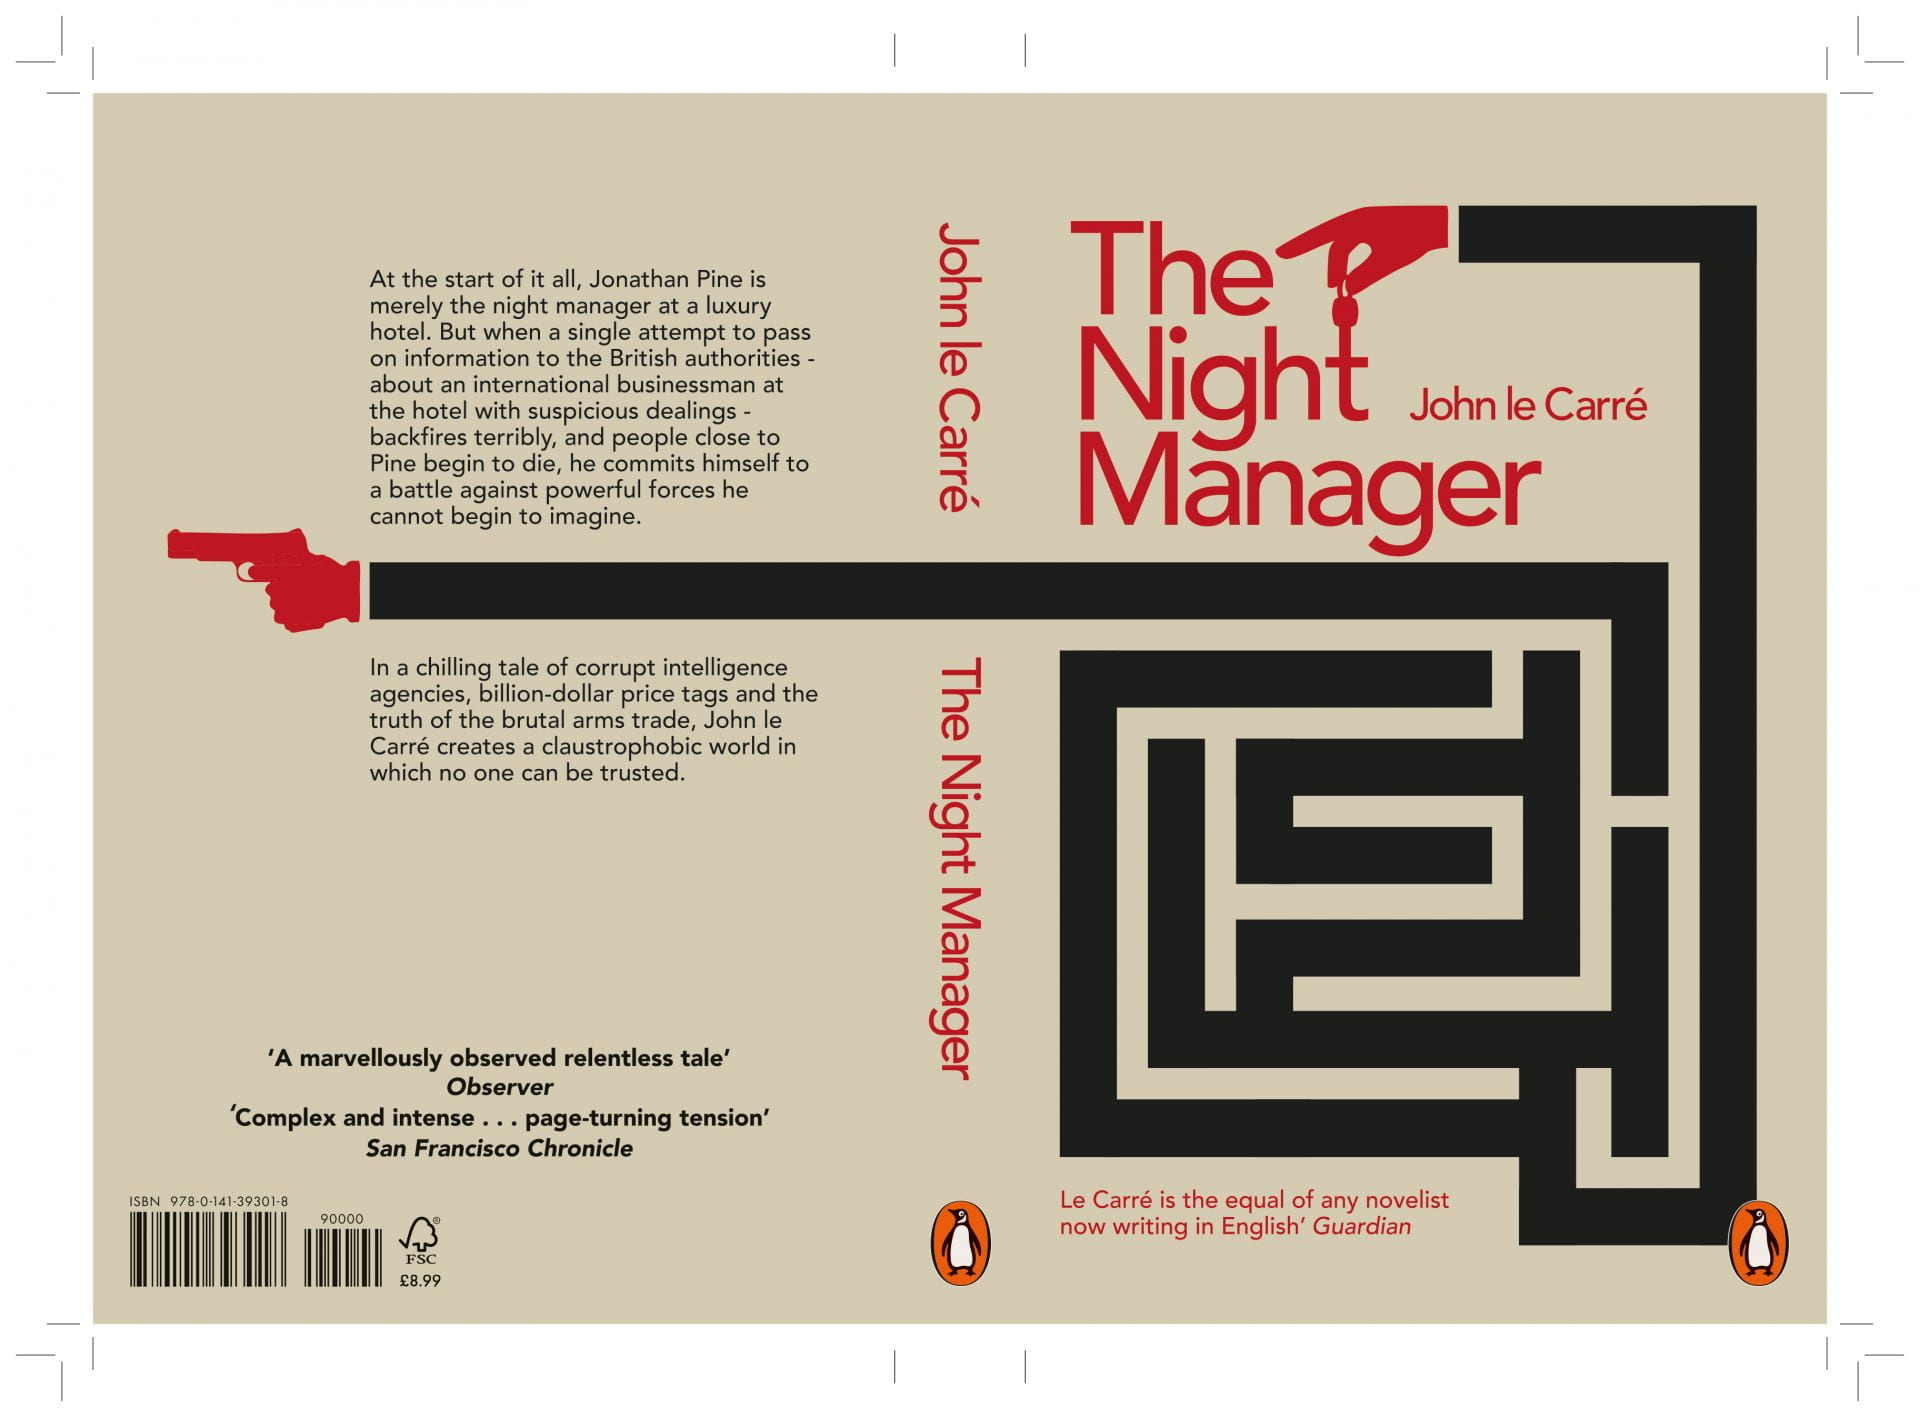 Book cover of 'The night Manager' depicting puzzles and one hand with keys the other holding a gun.